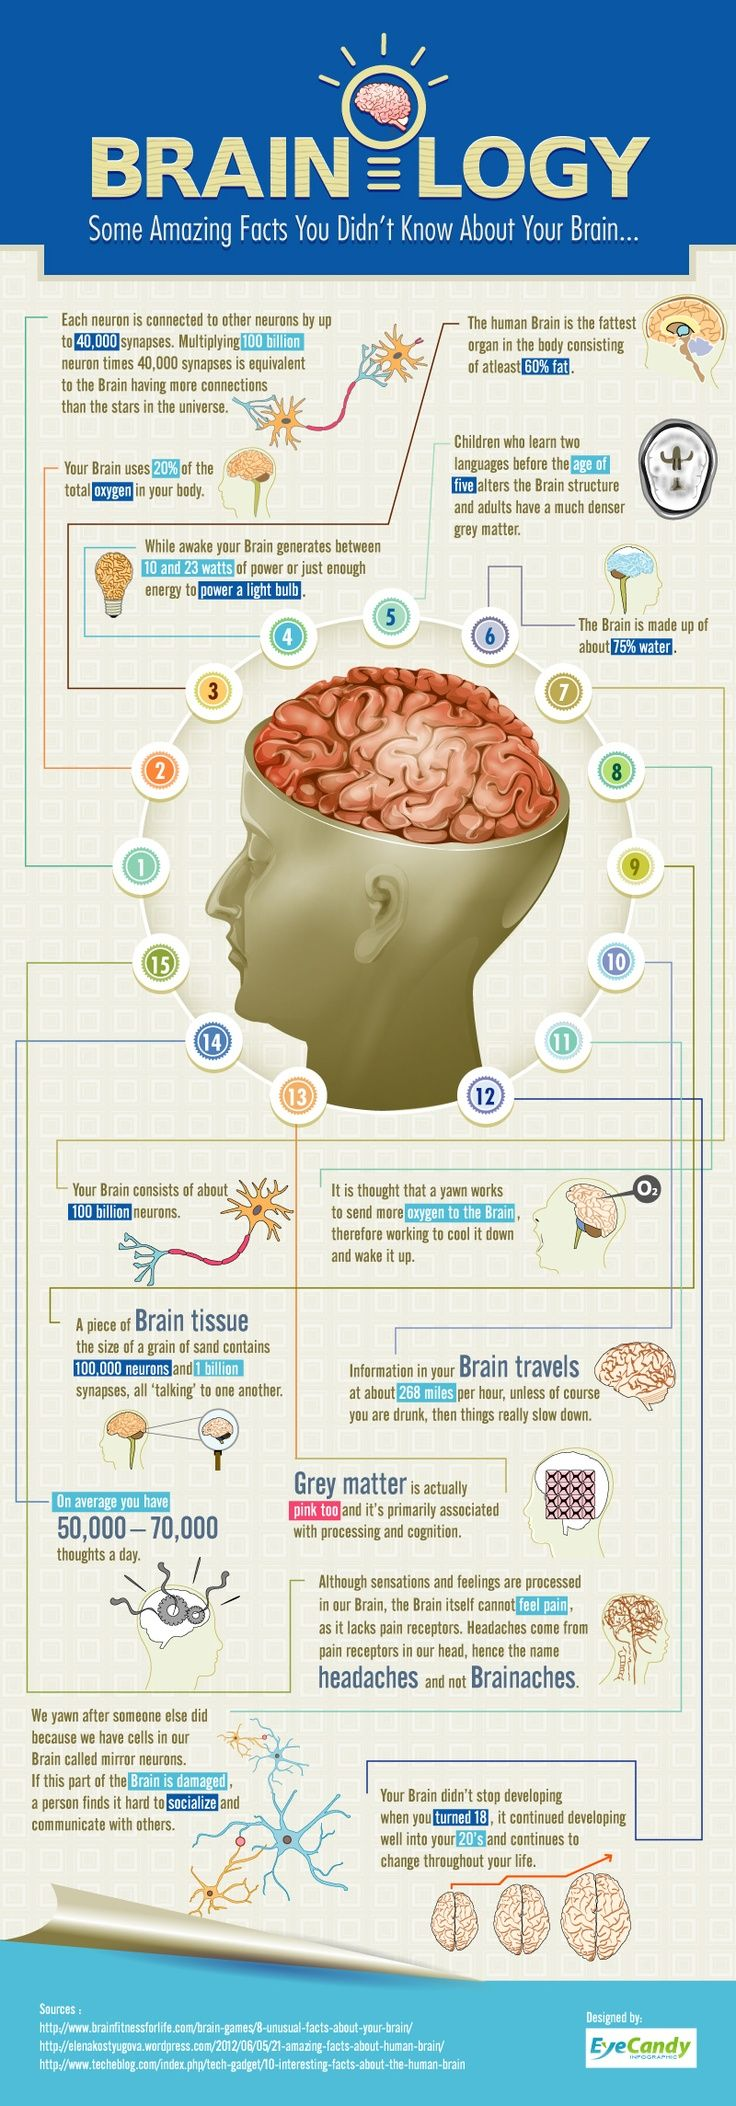 Some amazing facts you didn't know about your brain #groveevanston